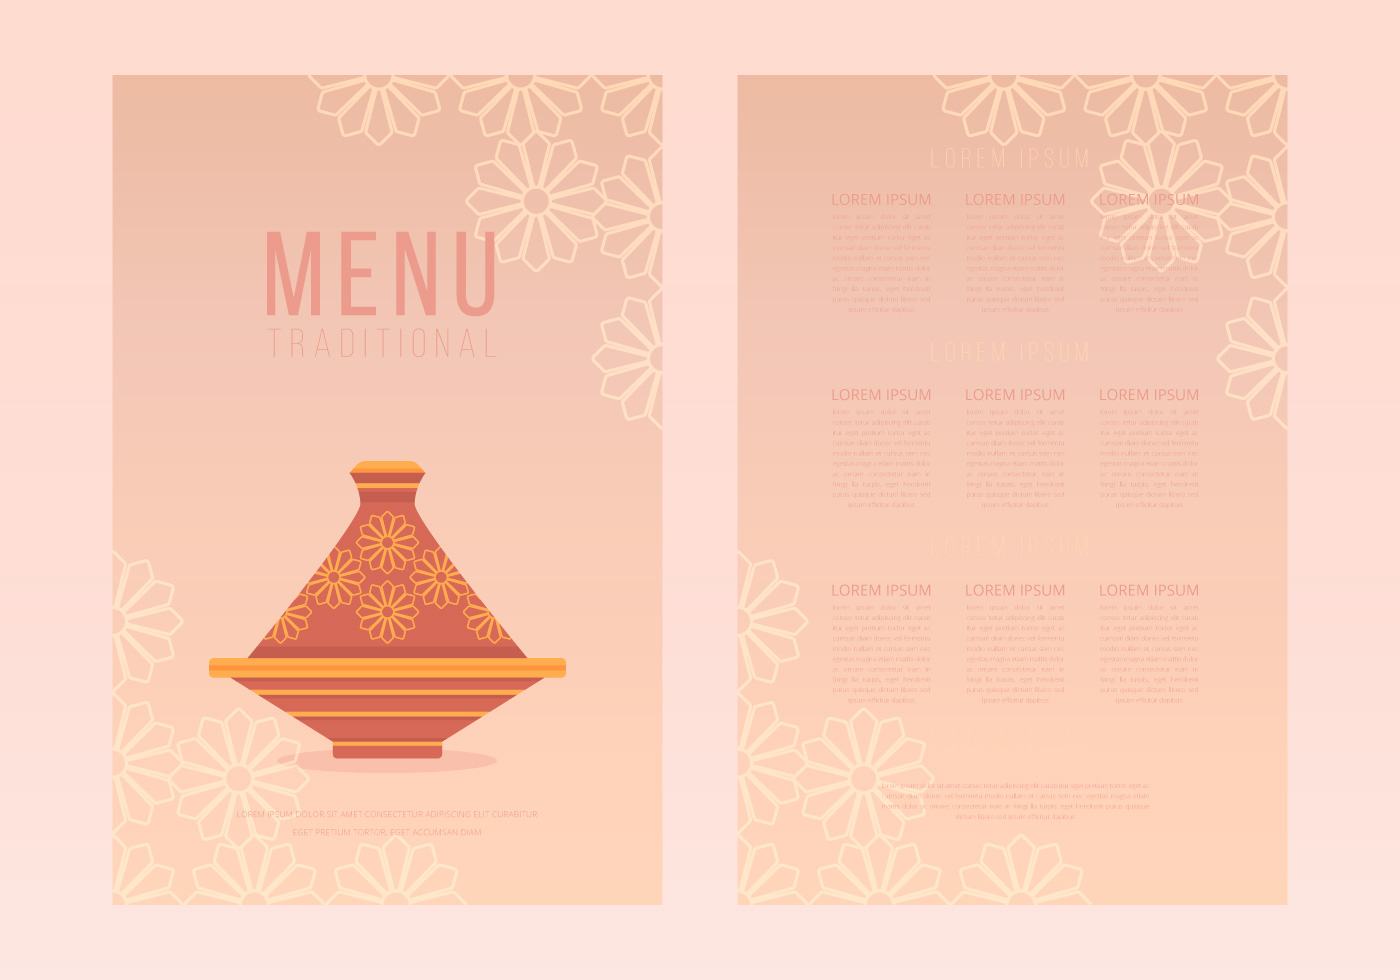 menue templates - tajine moroccan traditional food menu templates download